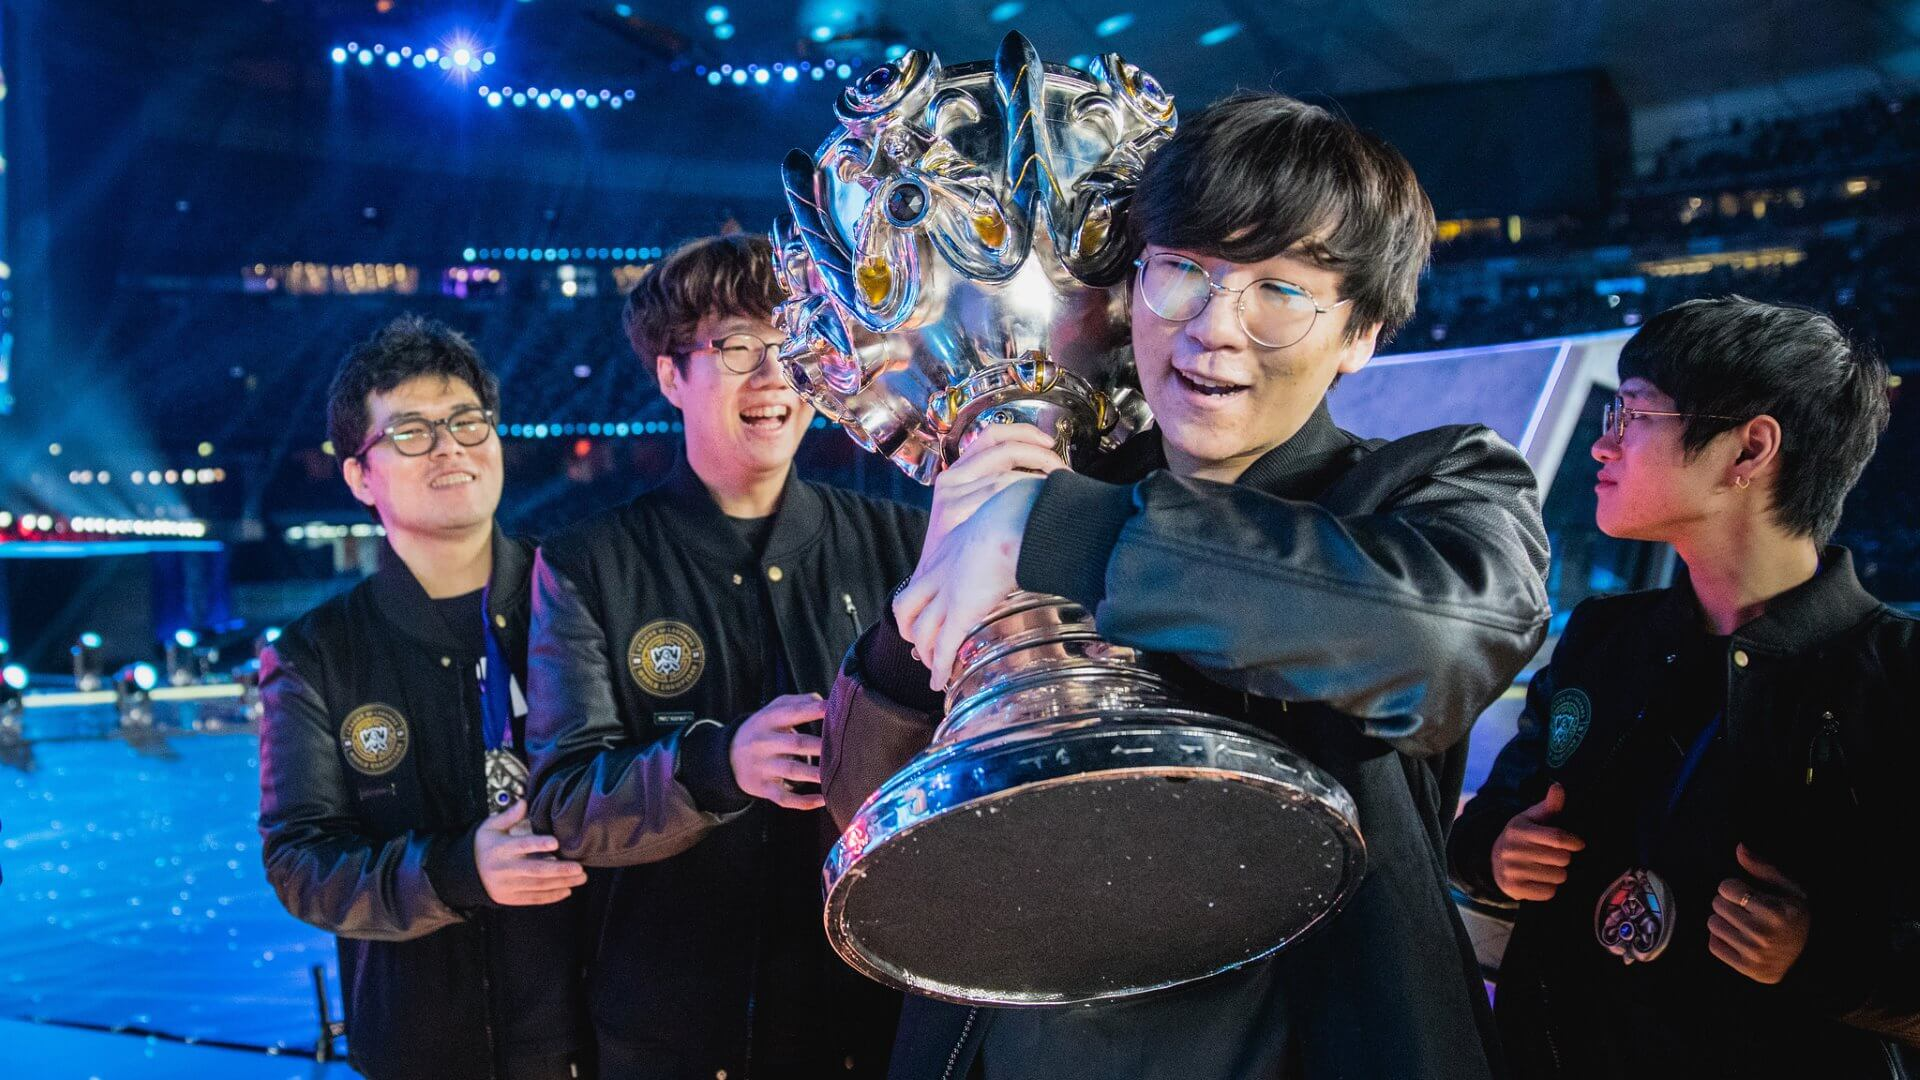 Samsung Galaxy holding the trophy at 2017 World Championship